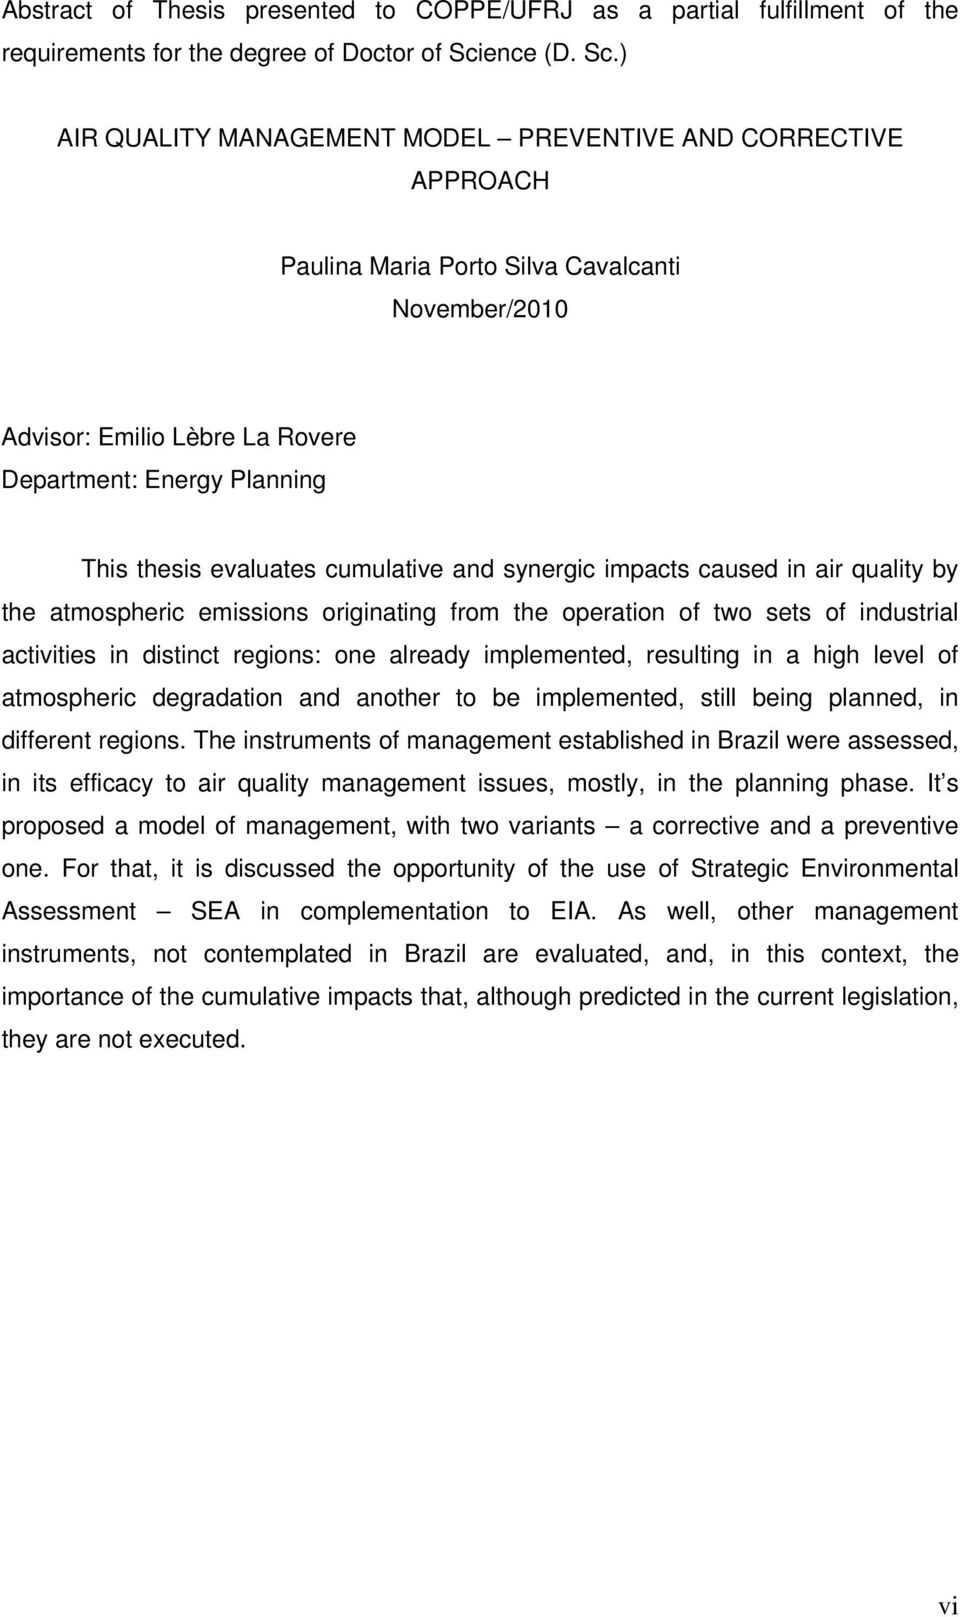 ) AIR QUALITY MANAGEMENT MODEL PREVENTIVE AND CORRECTIVE APPROACH Paulina Maria Porto Silva Cavalcanti November/2010 Advisor: Emilio Lèbre La Rovere Department: Energy Planning This thesis evaluates